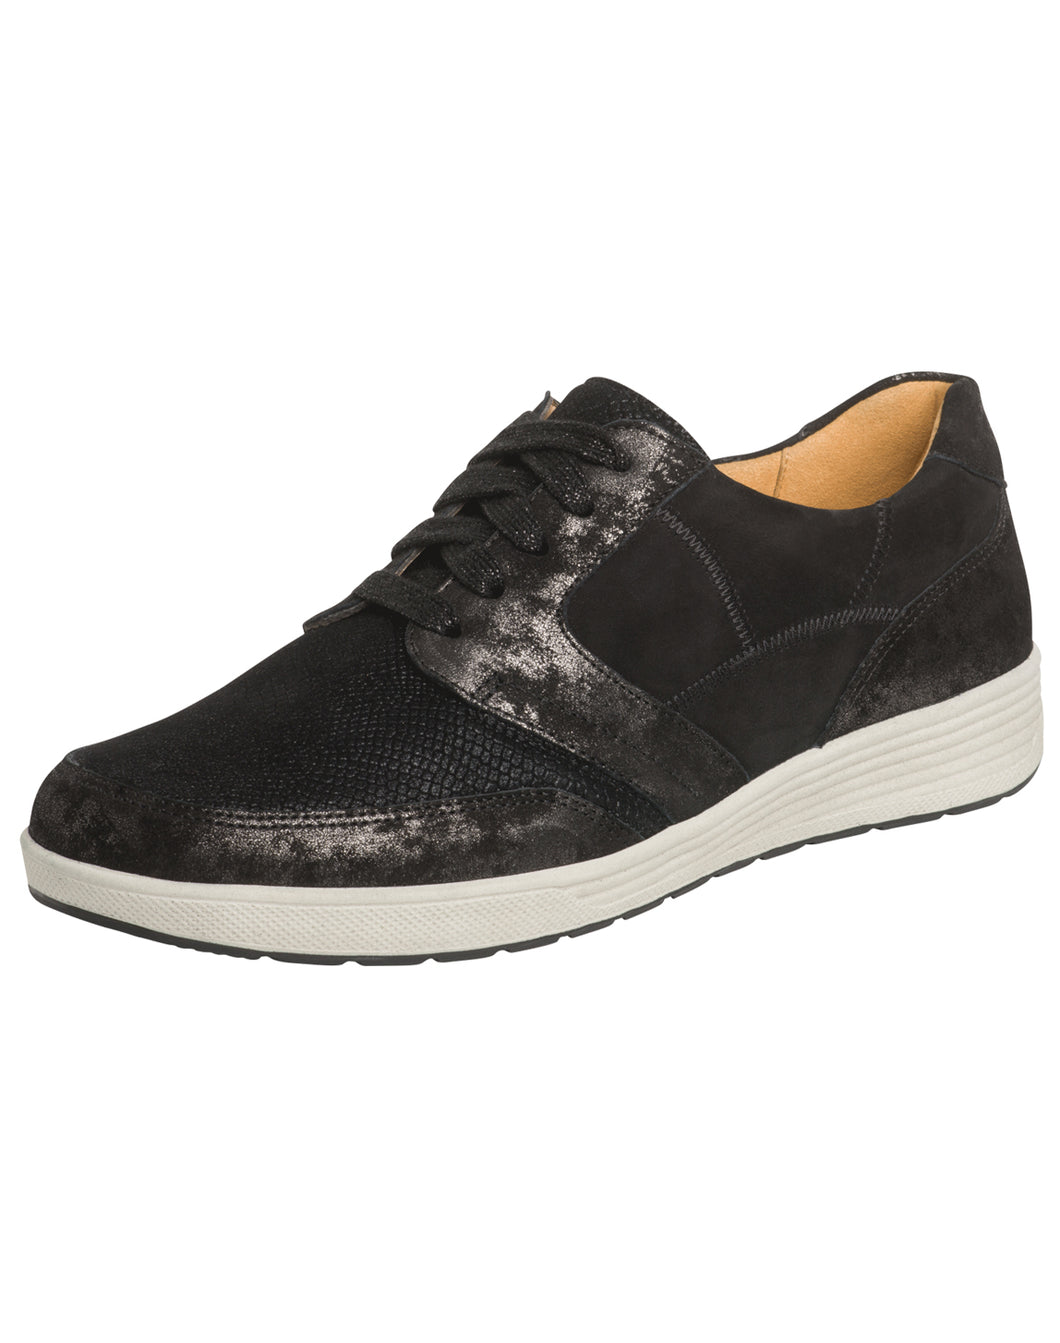 GANTER 208143 KLARA LACE SHOE BLACK